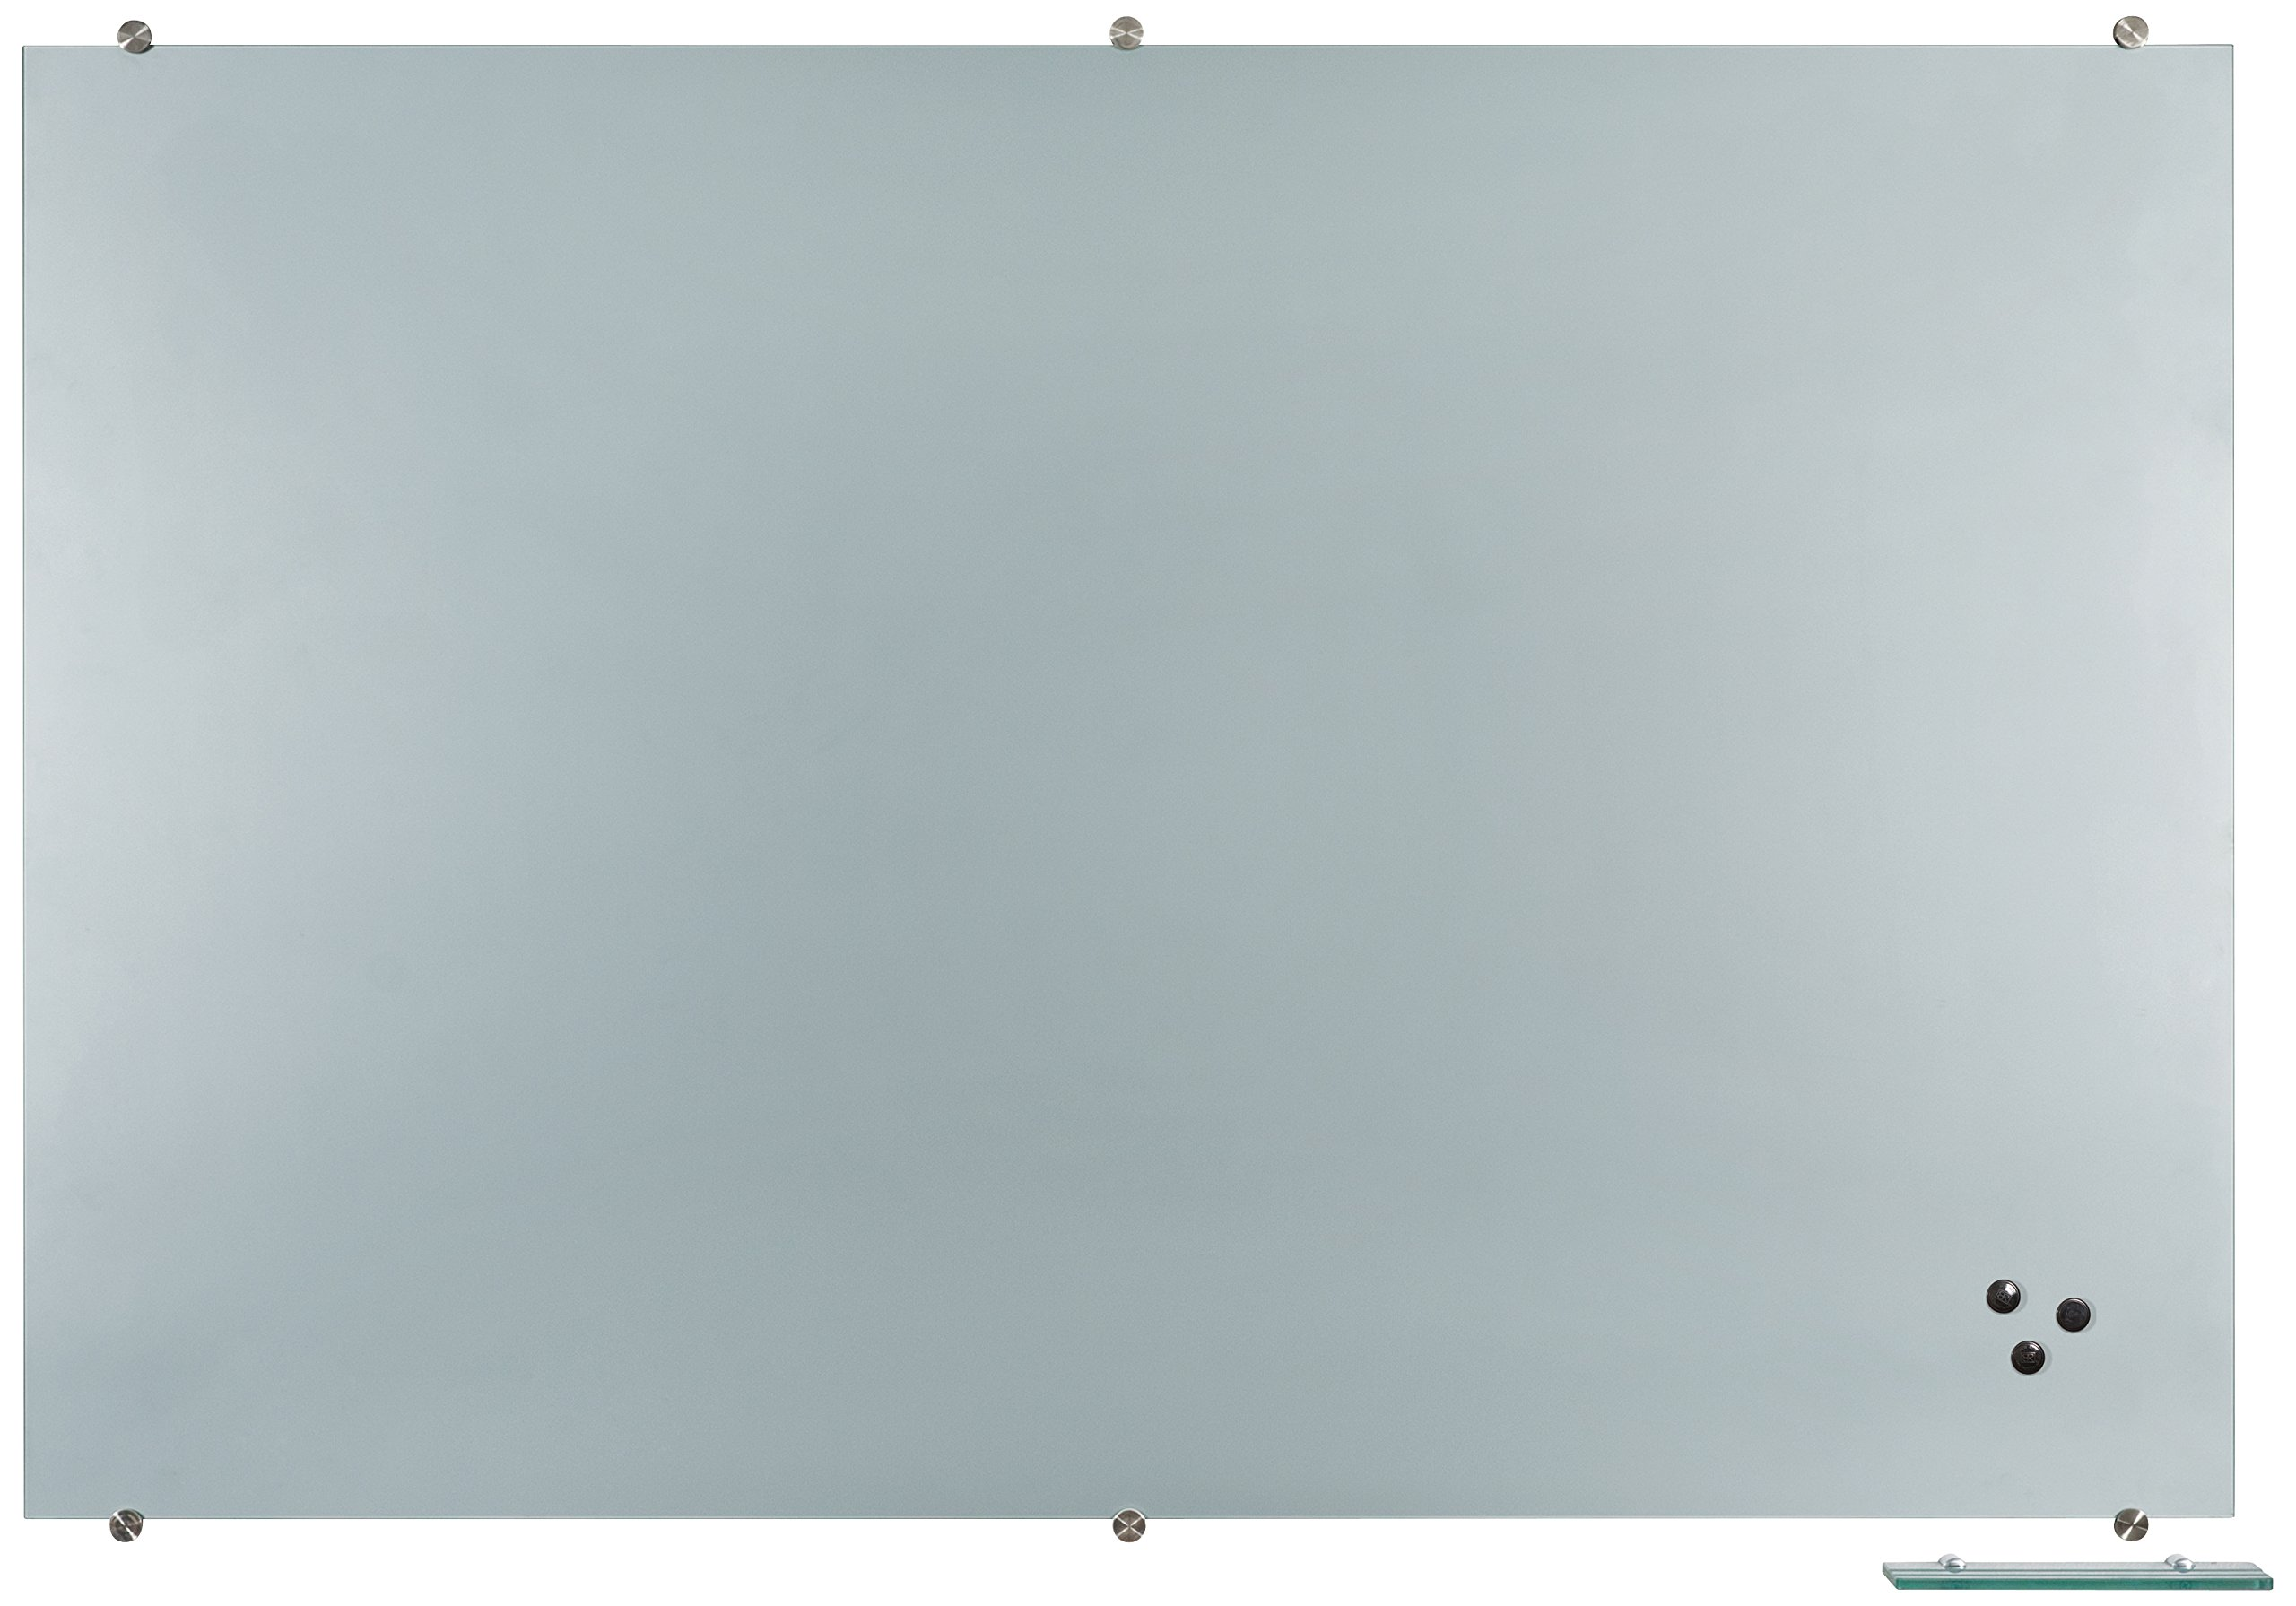 Best-Rite Visionary Projection Magnetic Glass Dry Erase Board, 4 x 6 Feet, Matte Gray Surface  (83850)